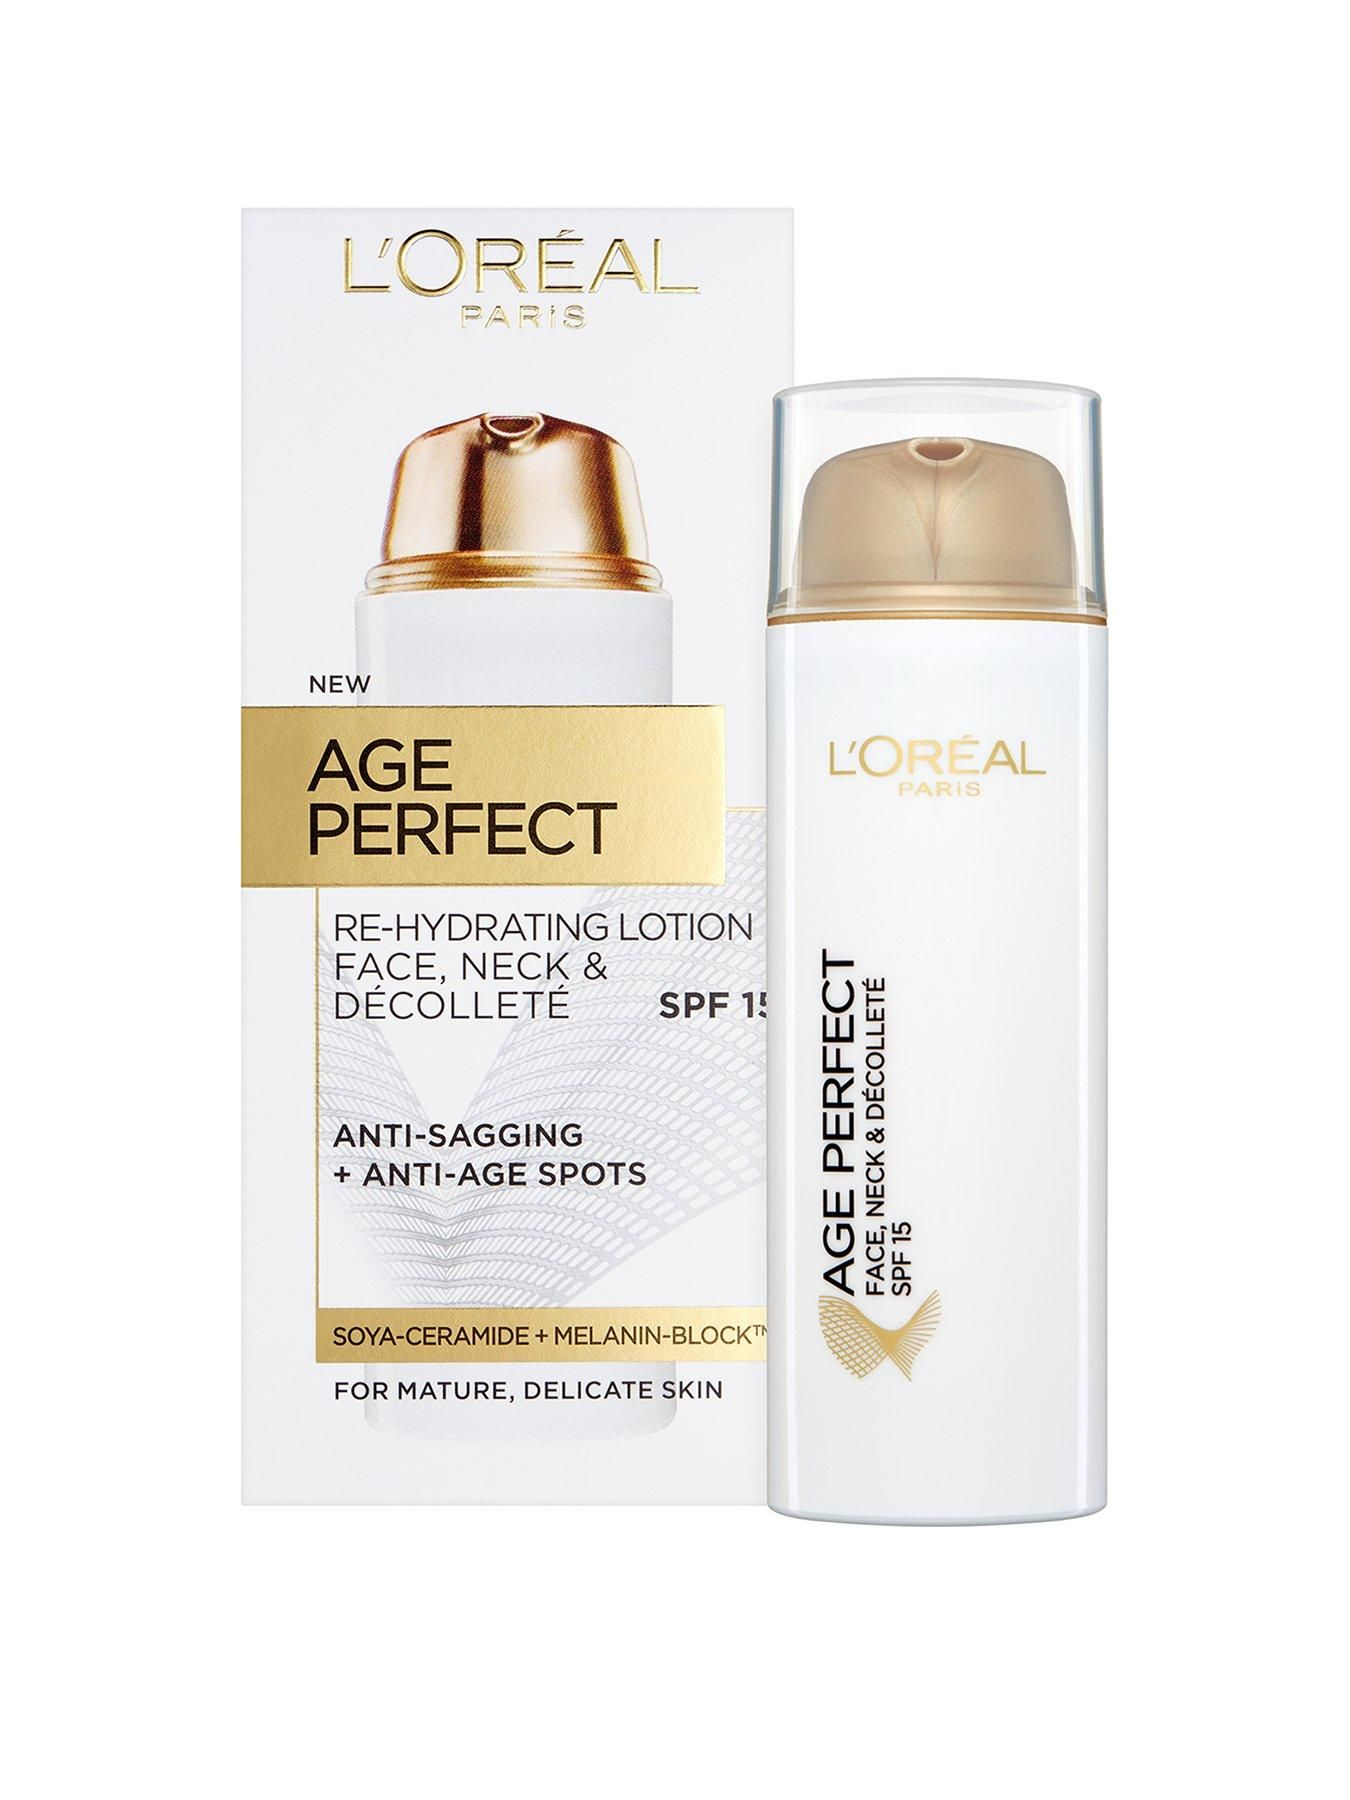 L'Oreal Paris Age Perfect Face, Neck And Decollete Spf15